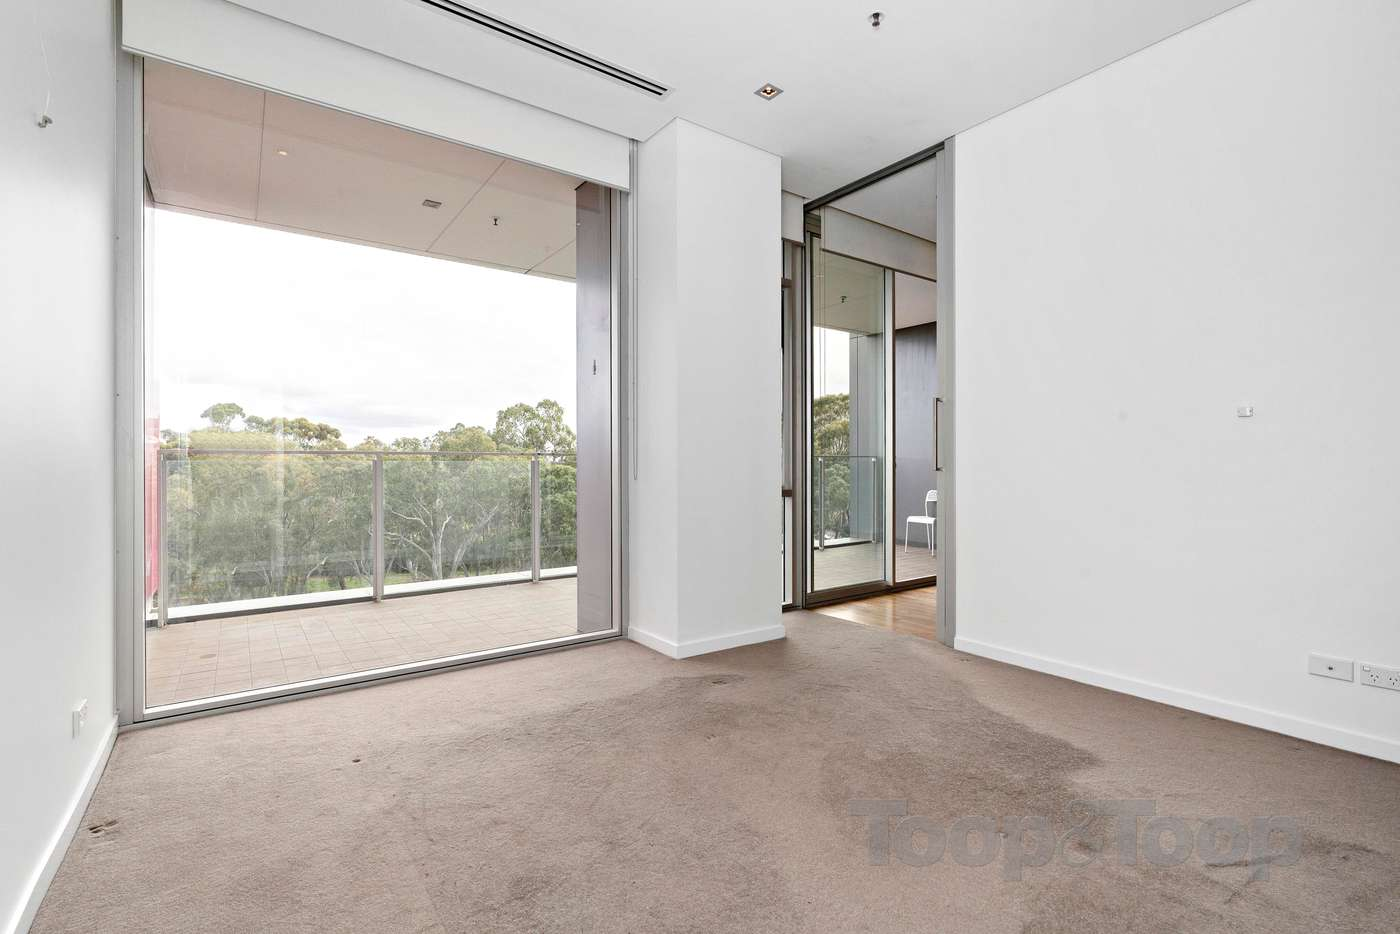 Sixth view of Homely apartment listing, 64/220 Greenhill Road, Eastwood SA 5063